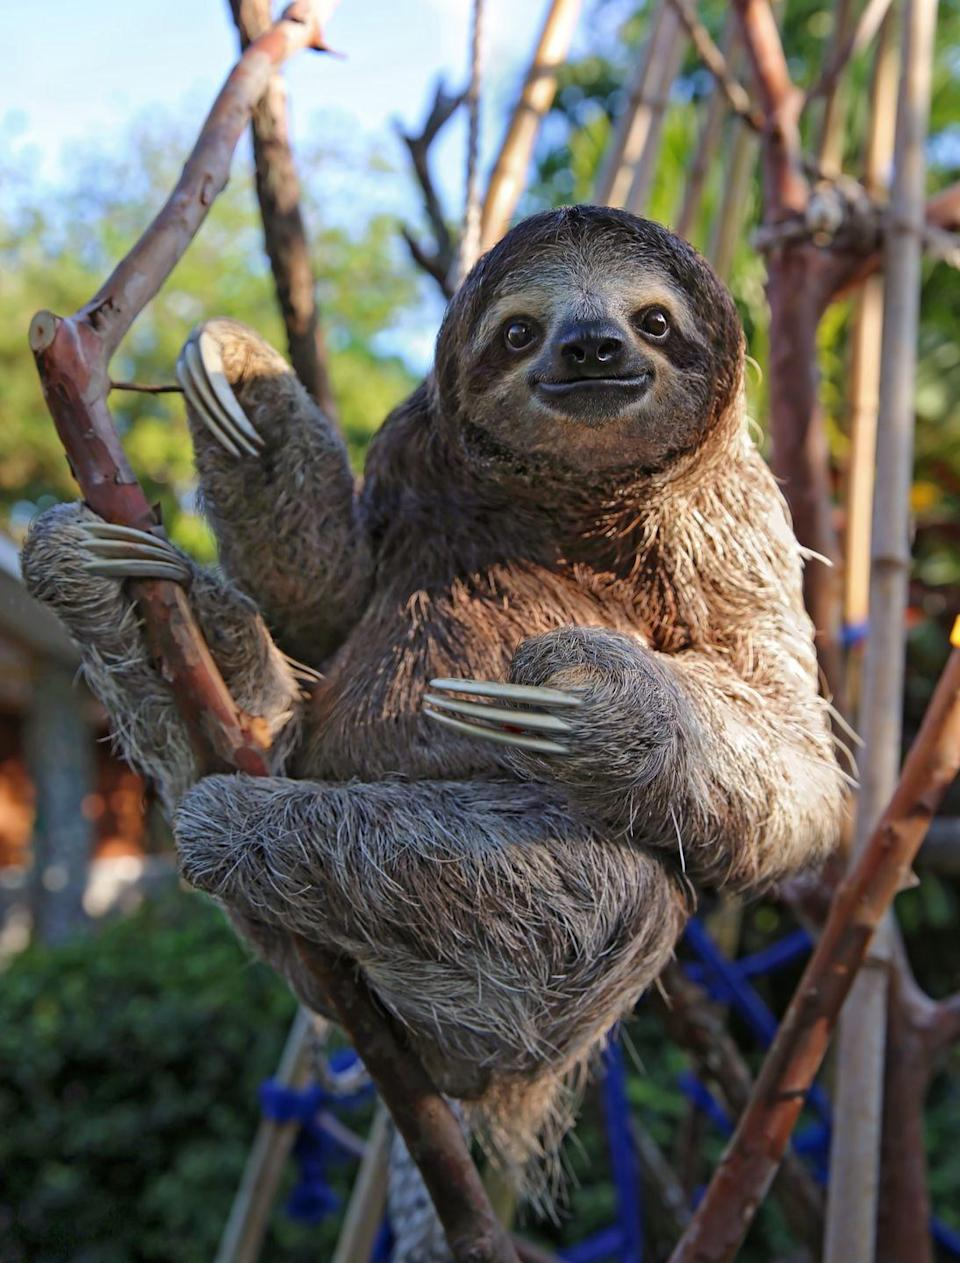 """<p>There are two types of sloths slowly roaming the rainforests in Central and South America: toed and three-toed sloths. Of the two different kinds of sloths, there are six different species. According to the World Wildlife Federation, <a href=""""https://www.worldwildlife.org/species/sloth"""" rel=""""nofollow noopener"""" target=""""_blank"""" data-ylk=""""slk:the Pygmy three-toed sloth is critically endangered"""" class=""""link rapid-noclick-resp"""">the Pygmy three-toed sloth is critically endangered</a>.<br></p>"""